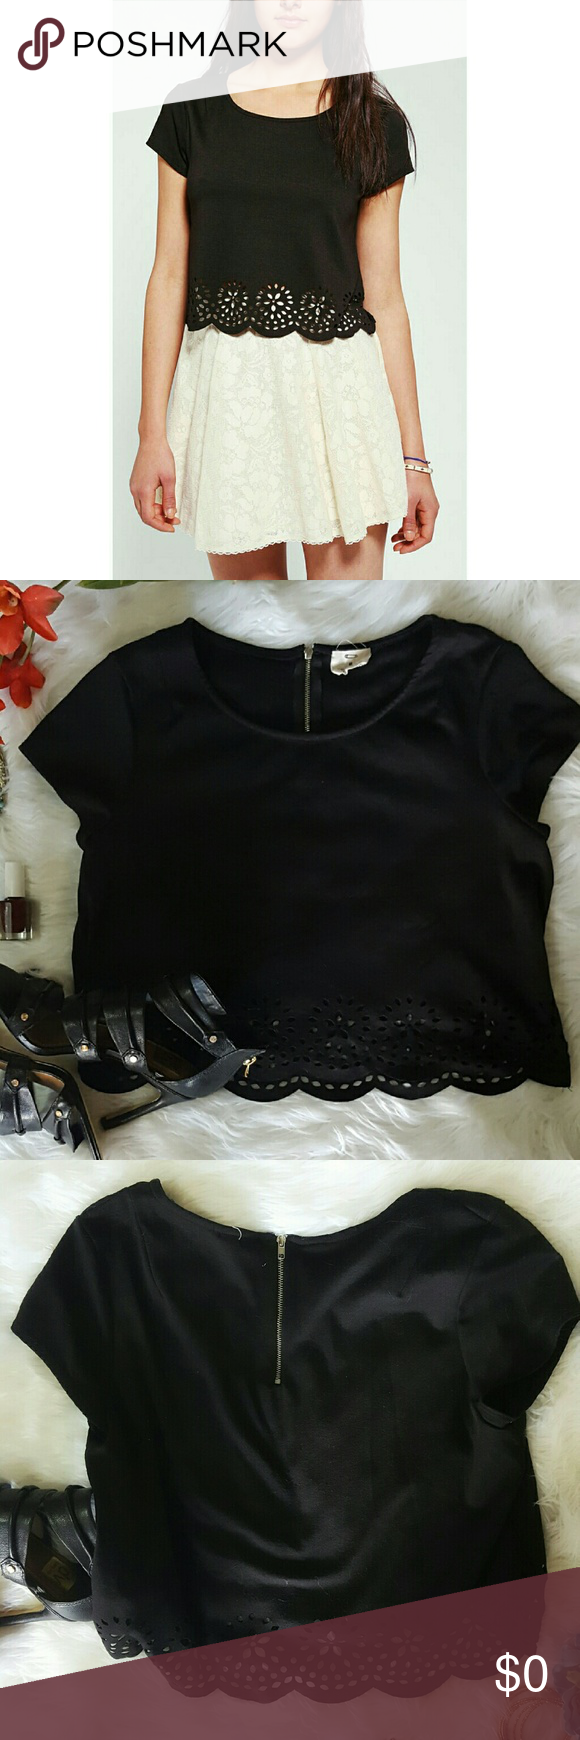 """UO Lasercut Crop Urban outfitters crop top in excellent pre-owned condition. Pins and Needles brand. Exposed zipper in back.  Size Medium. Bust: 17"""". Length: 17.5"""". Poly/rayon/spandex. Handwash.  No PP, Merc, Trades or Holds please  Suggested User/5-Star Seller   THANKS FOR VISITING! HAPPY POSHING! Urban Outfitters Tops"""